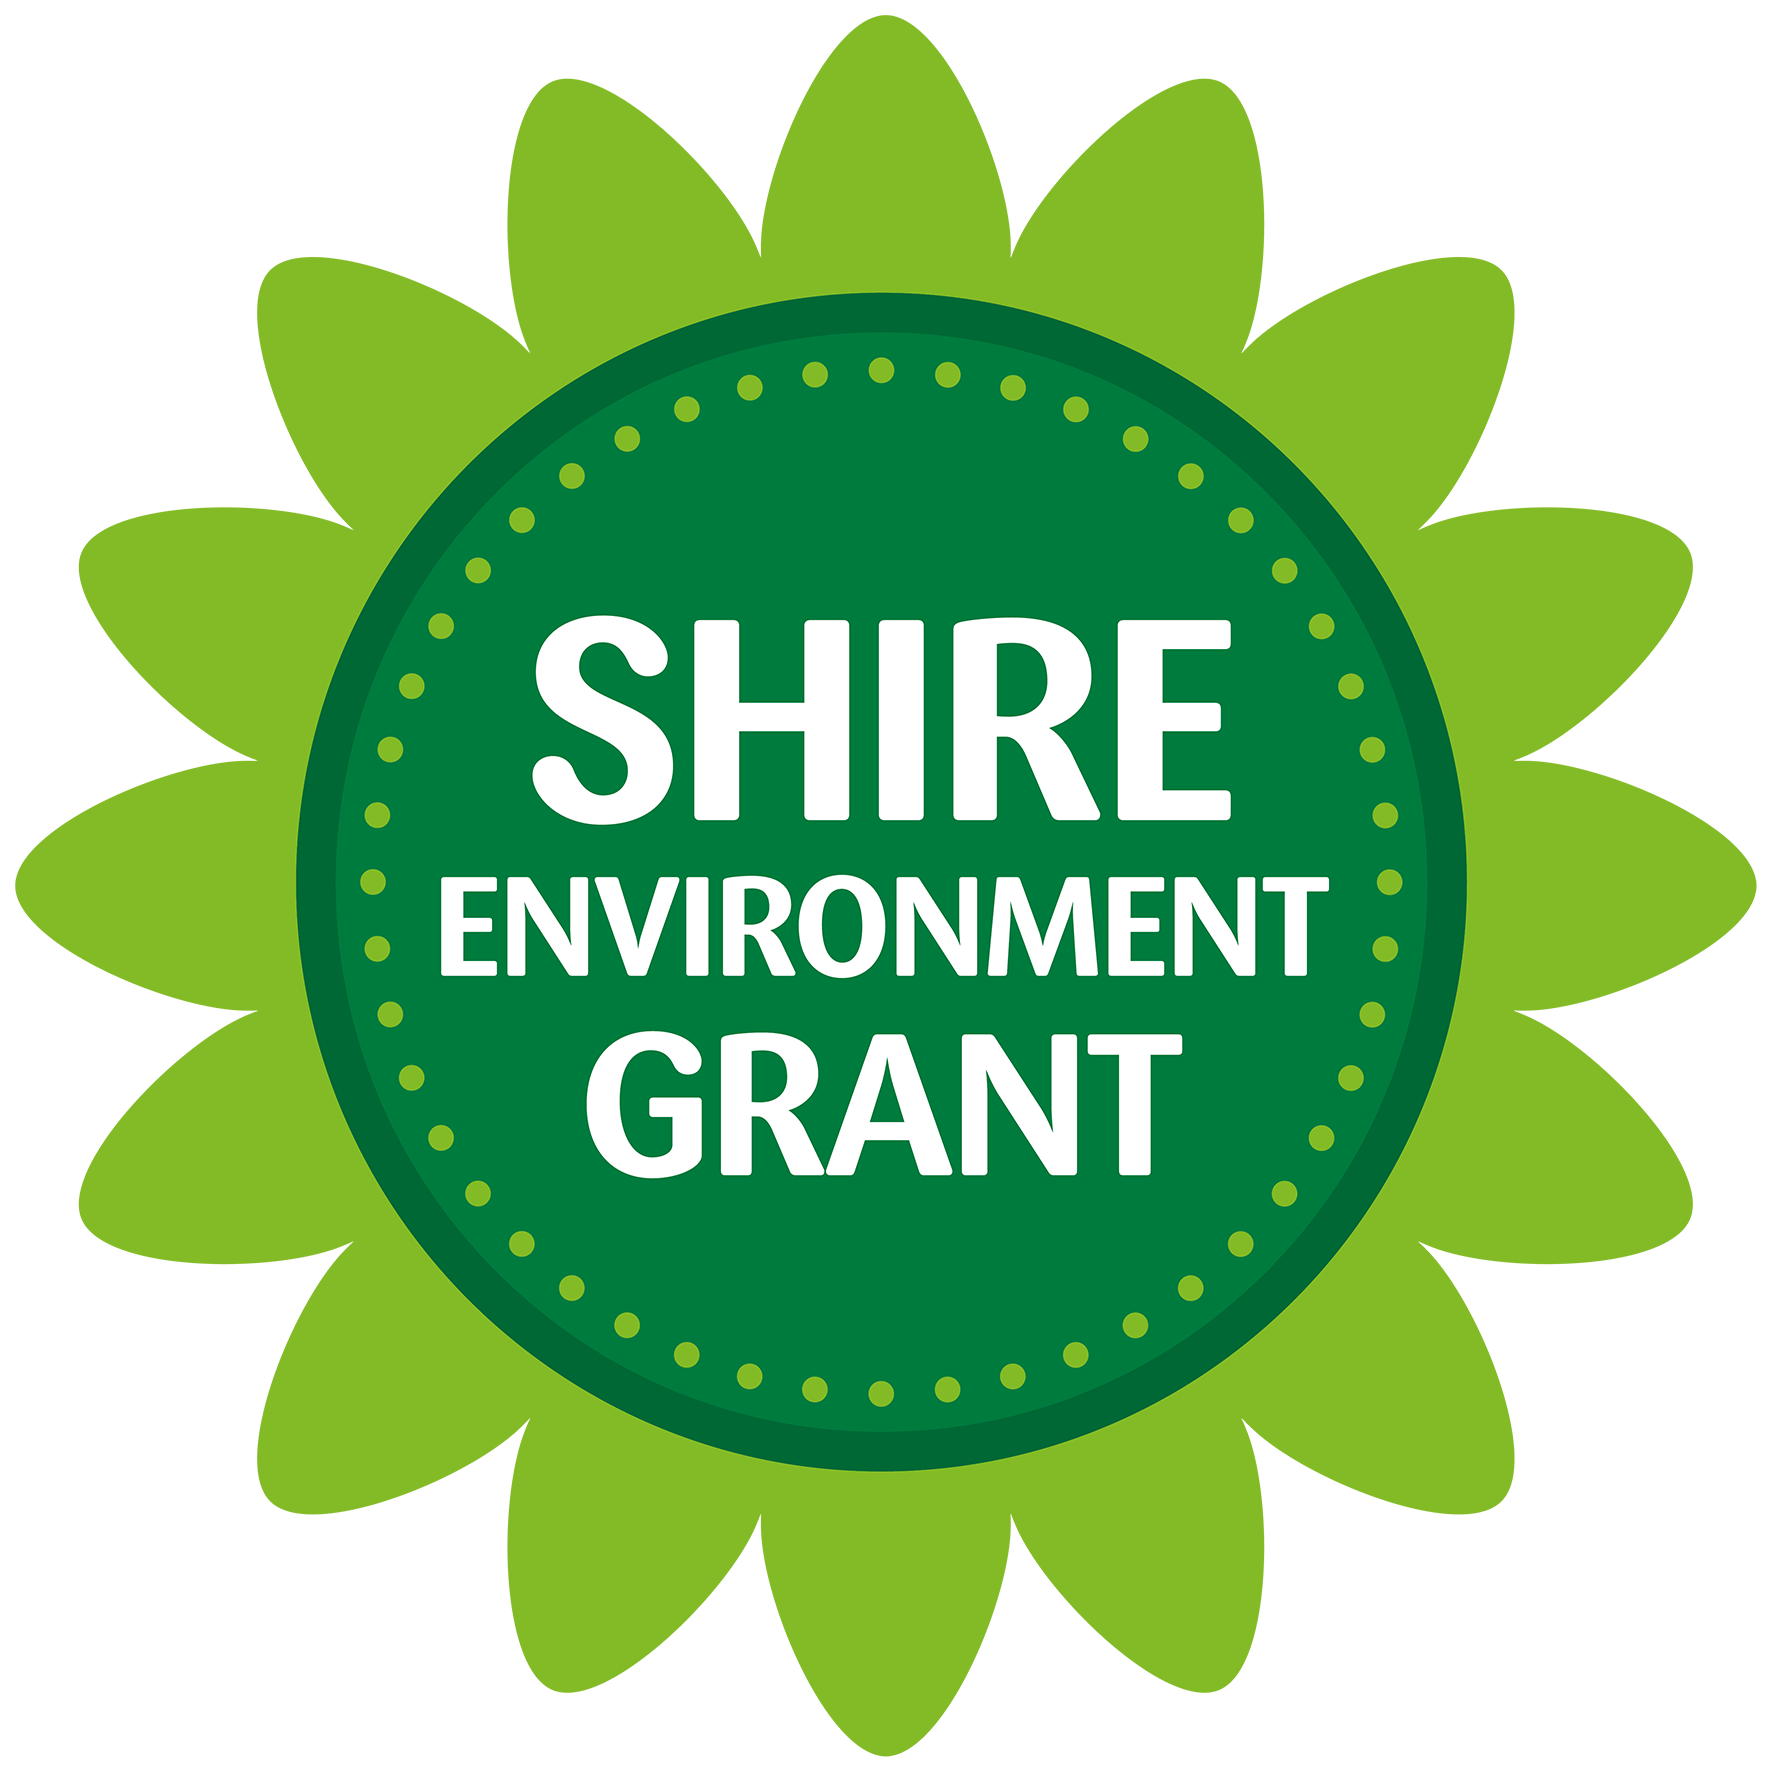 SHIRE Environment Grant: Virtual drop-in session